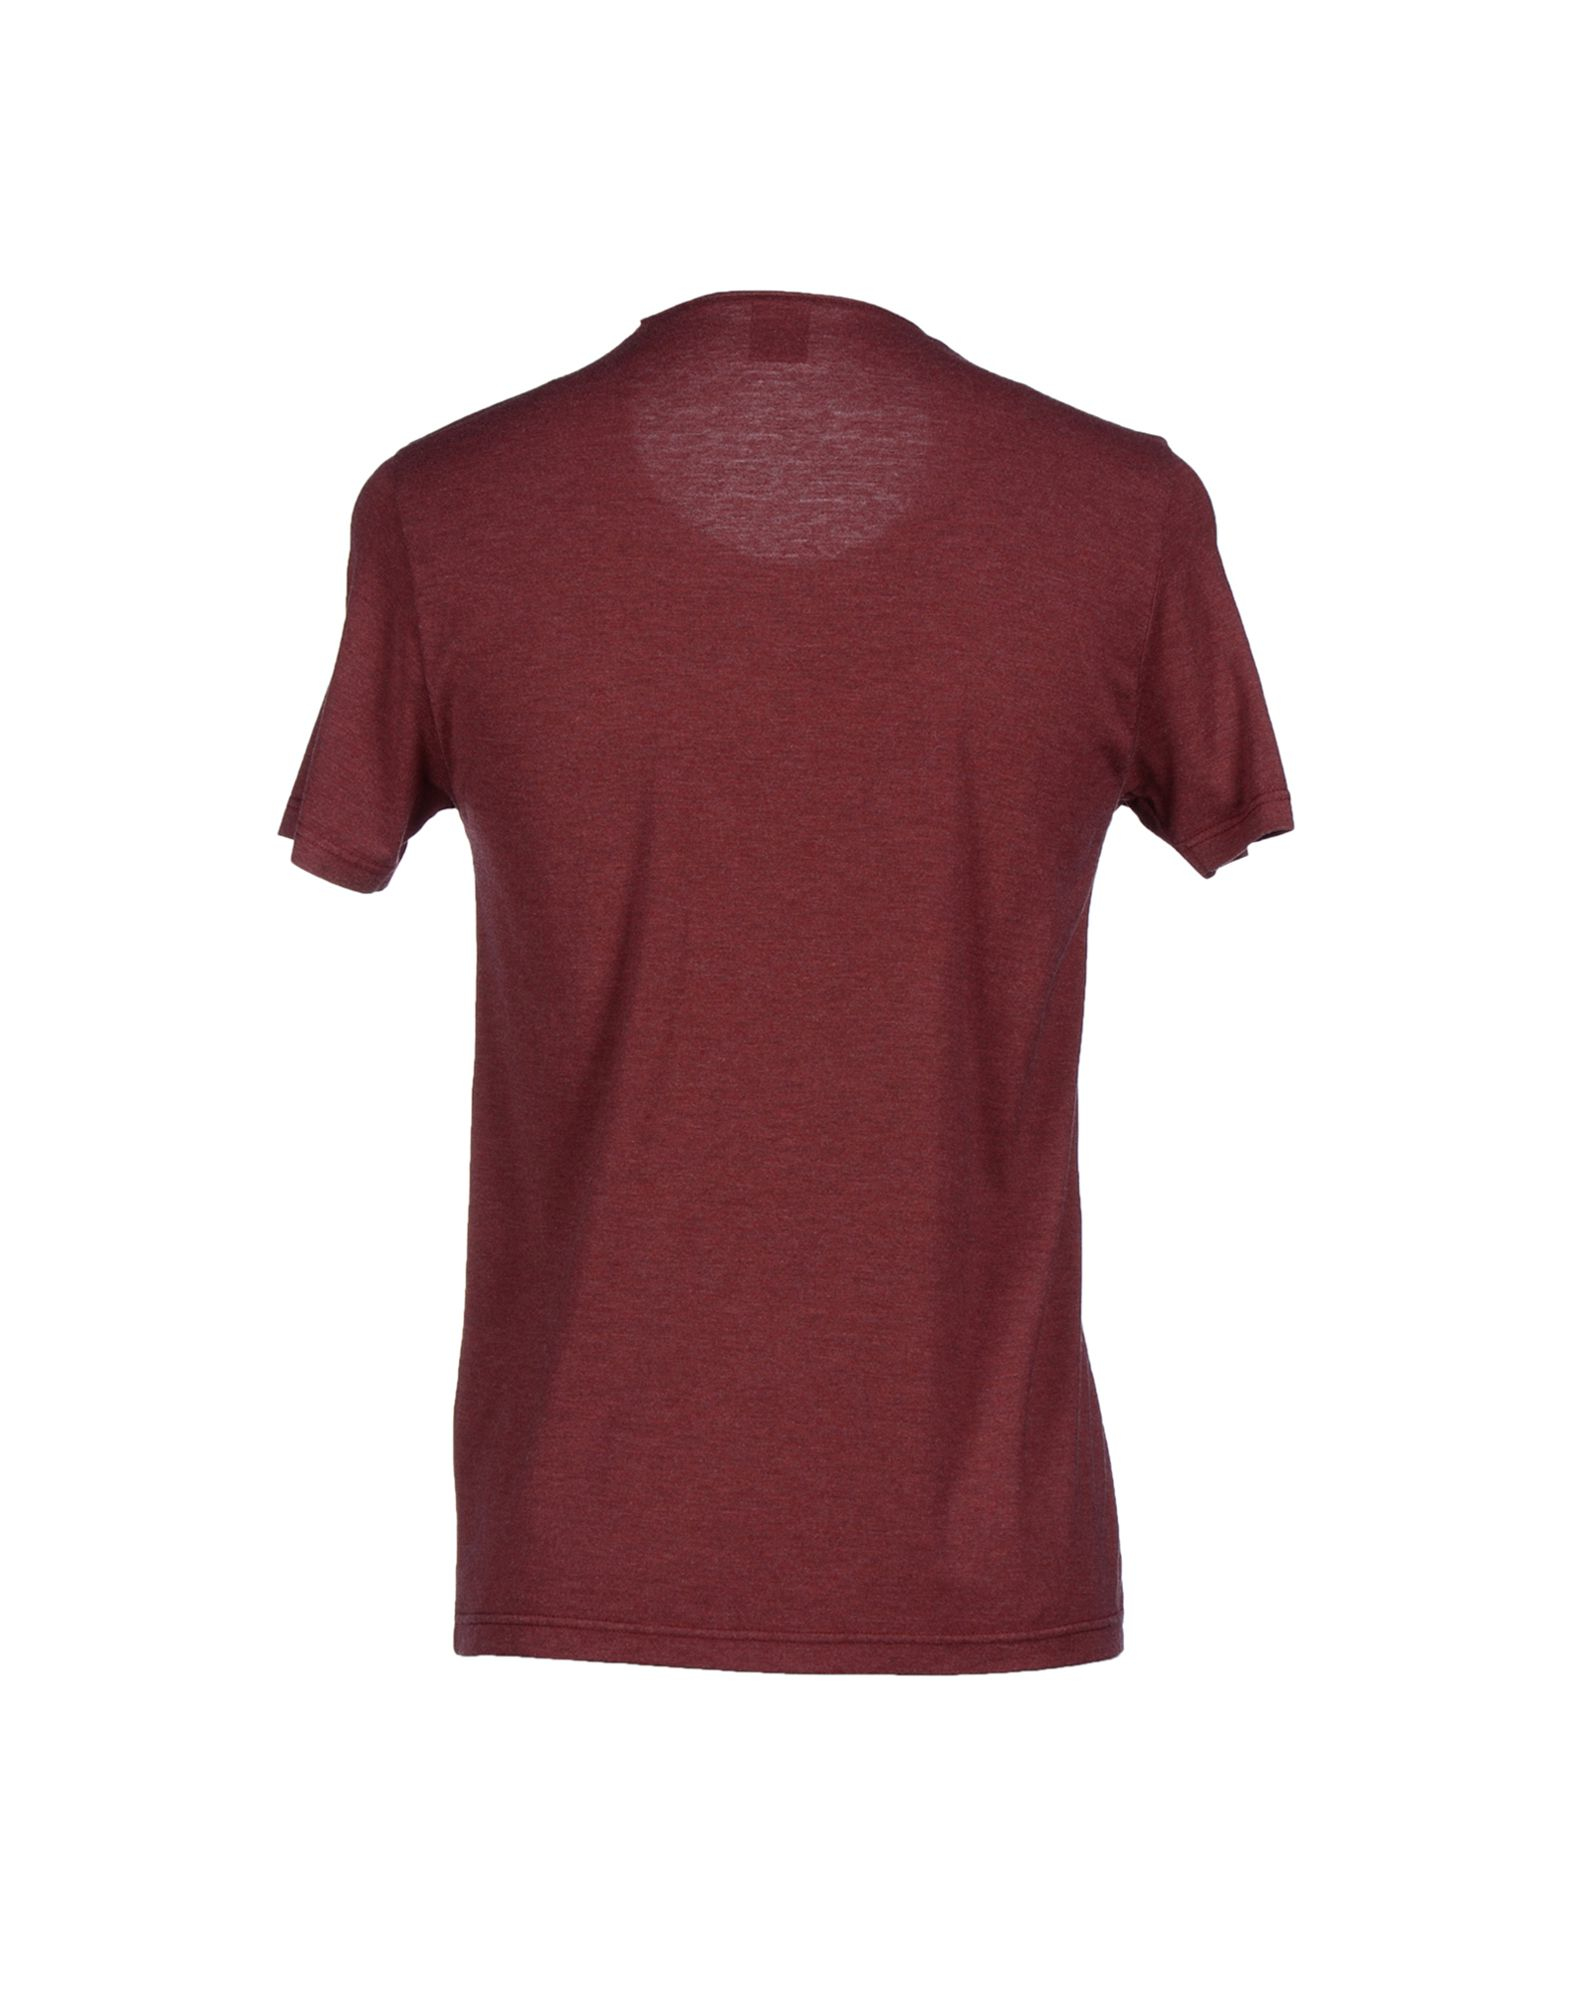 Jijil t shirt in brown for men maroon lyst for Maroon t shirt for men